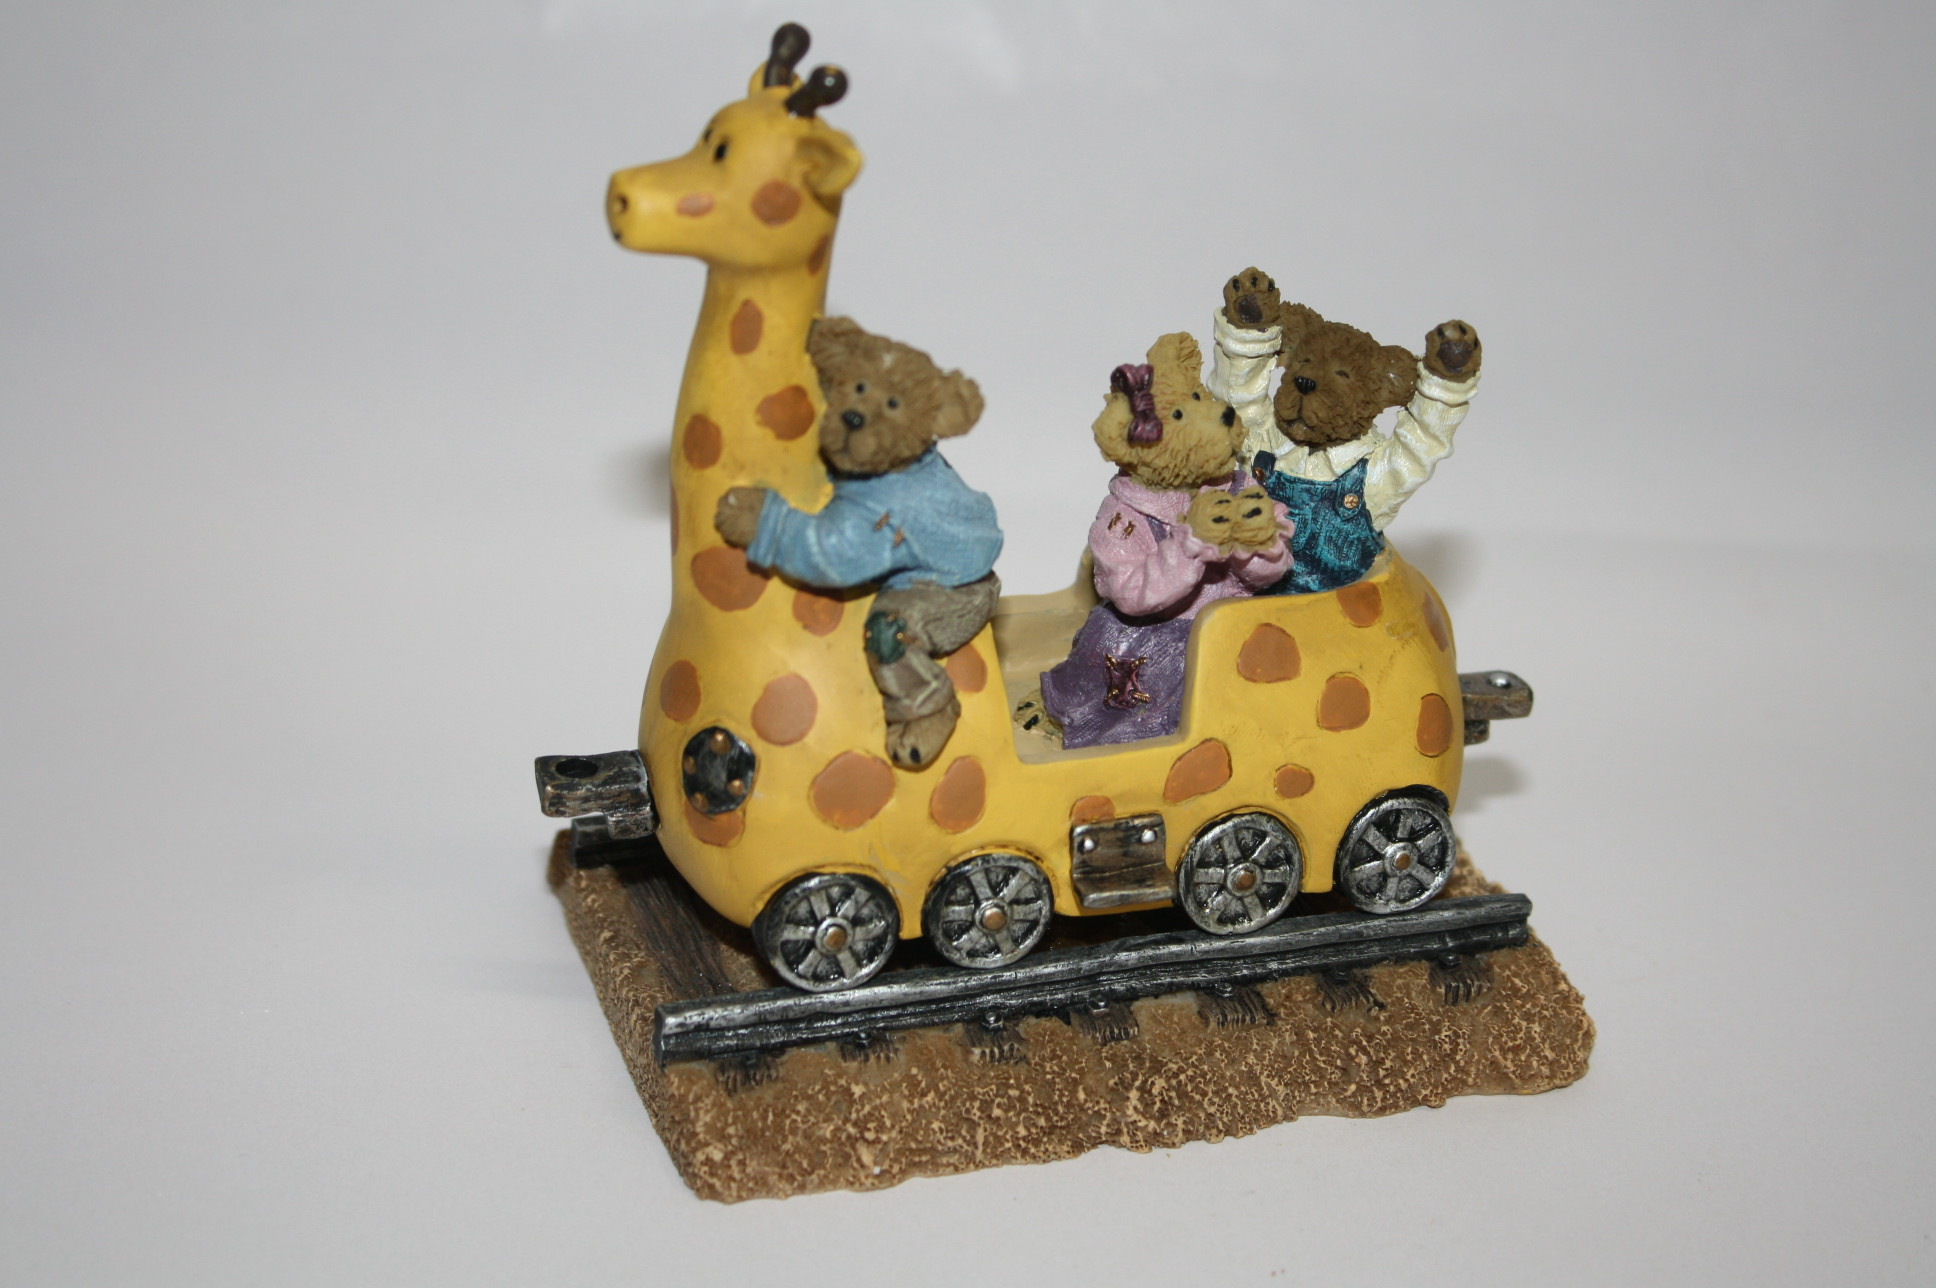 Boyds The Bearstone Collection - Ginny the Giraffe with Gage, Gracie and Graham (And Away We Go!) #4015993